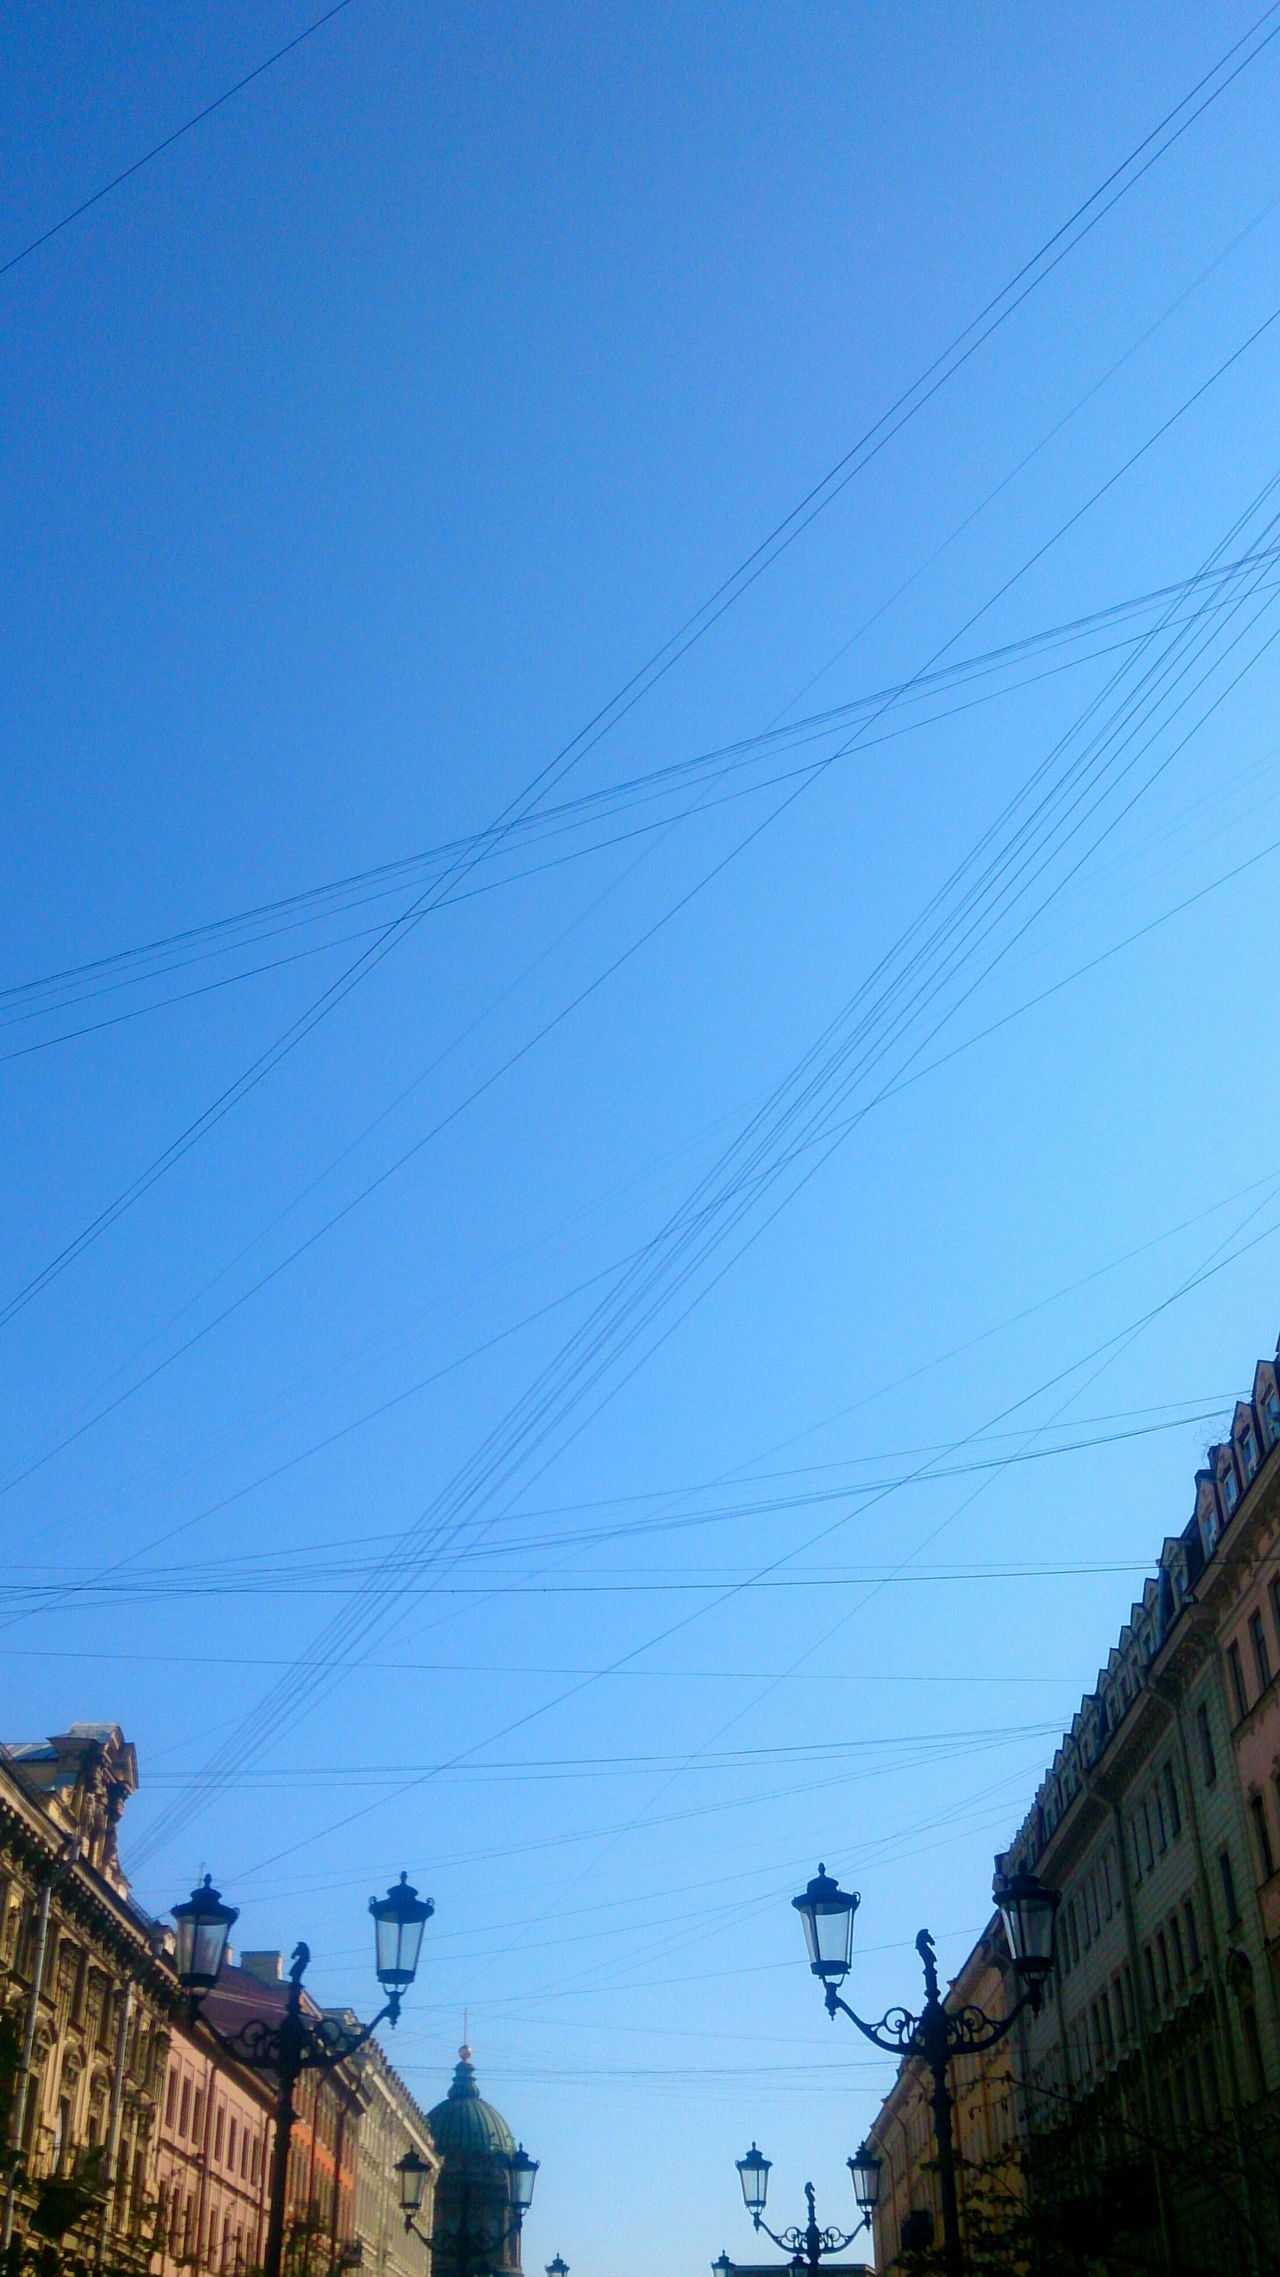 Wires over a street, Saint Petersburg, Russia. Wires Geometric Shapes Lines Simplicity Simple Saint Petersburg Russia Sony Xperia Zr Mobile Photography Cityscapes